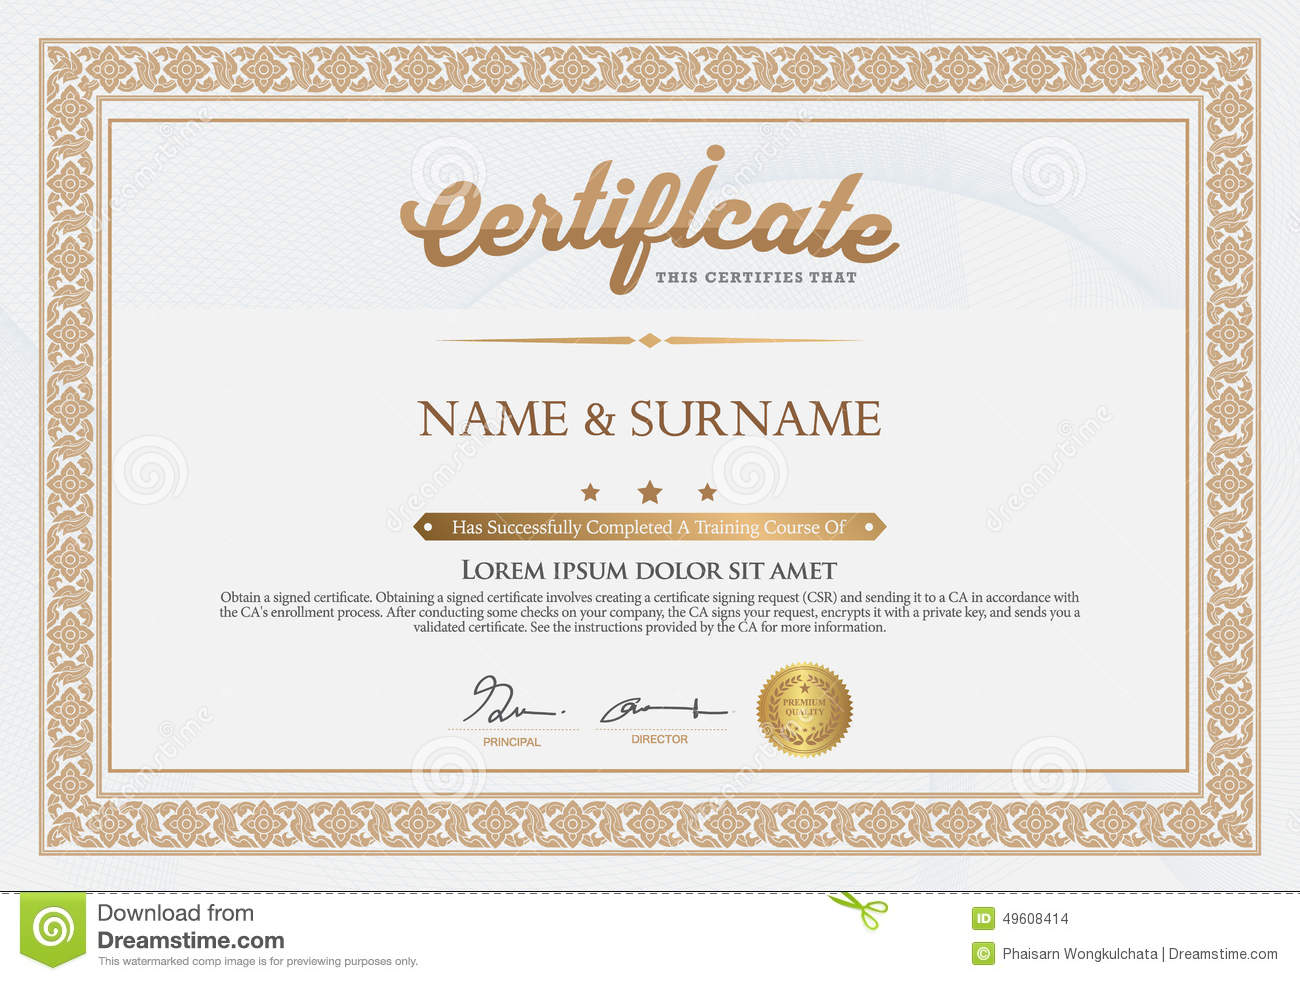 certificate quality template resume builder certificate quality template award certificate templates sample certificates are certificate of completion template illustrator ror the